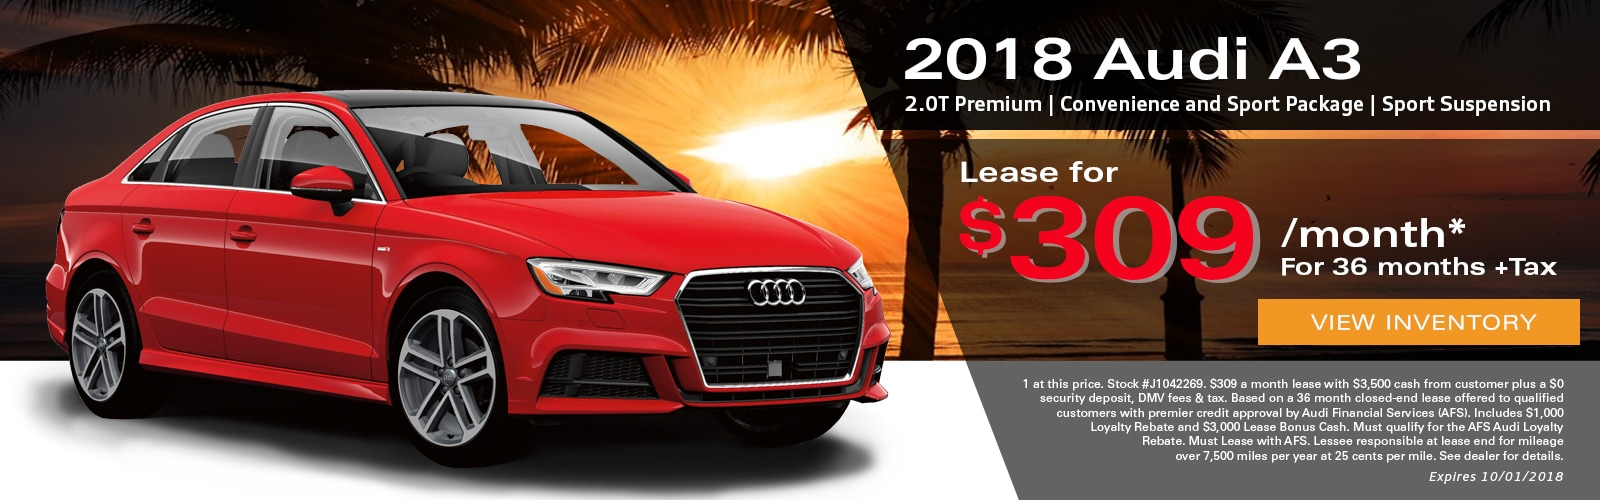 Audi Incentives Rebates Specials In Audi Finance And Lease Deals - Audi incentives